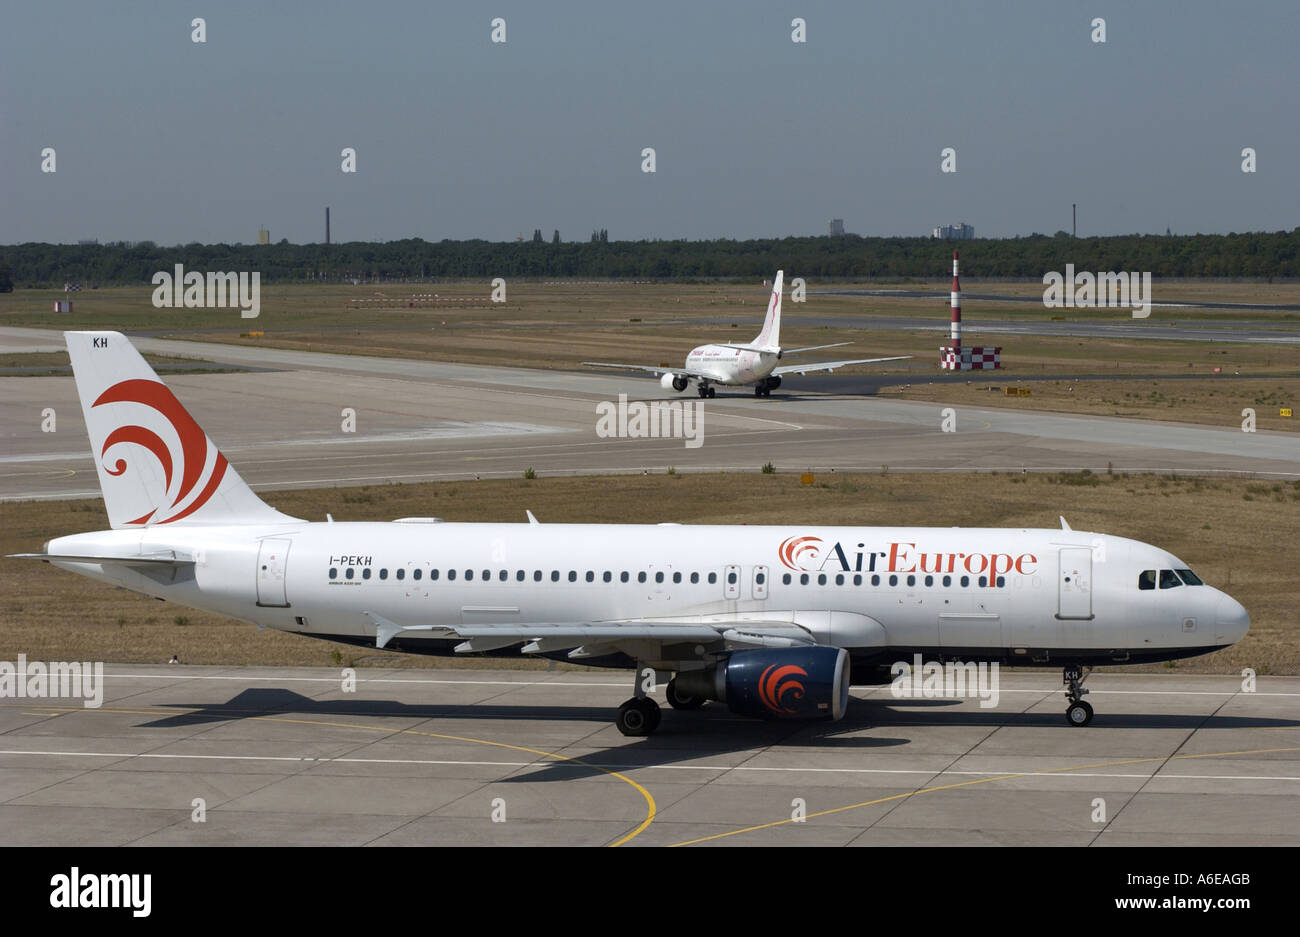 AirEurope airplane at Tegel airport, Berlin - Stock Image